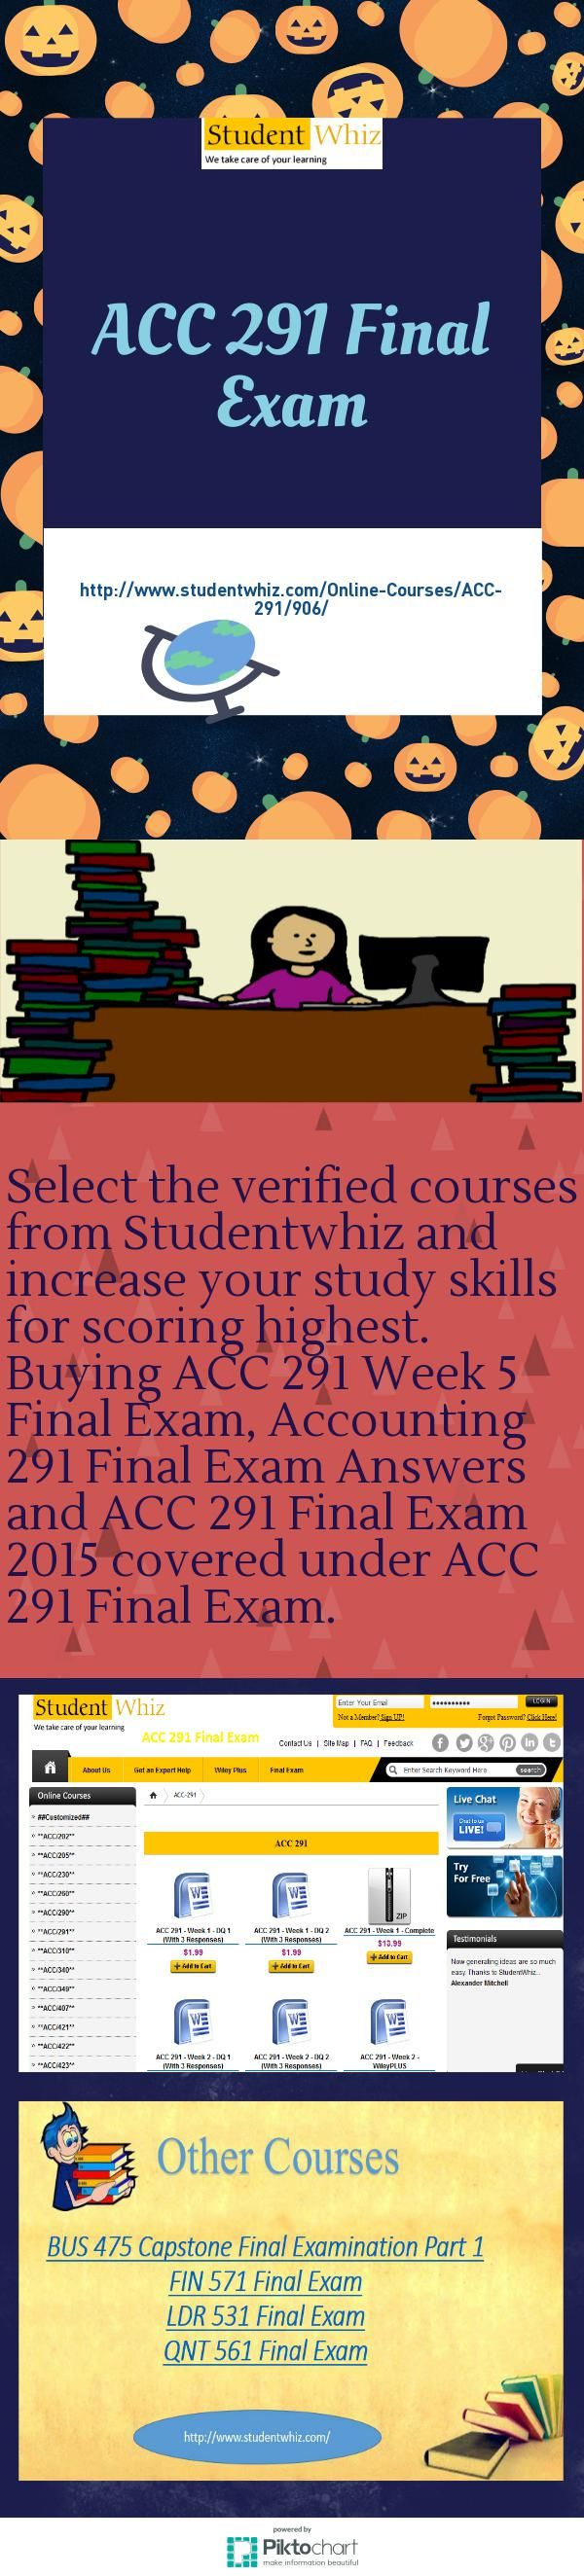 Let us help you for ACC 291 Final Exam, it is in accounting section. ACC 291 Final Exam contributed in ACC 291 week 5 Final Exam, ACC 291 week 5 Final Exam Answers, ACC 291 Final Exam University of phoenix, ACC 291 Final Exam 2014 and ACC 291 Final Exam 2015. Studentwhiz is best! http://www.studentwhiz.com/Online-Courses/ACC-291/906/